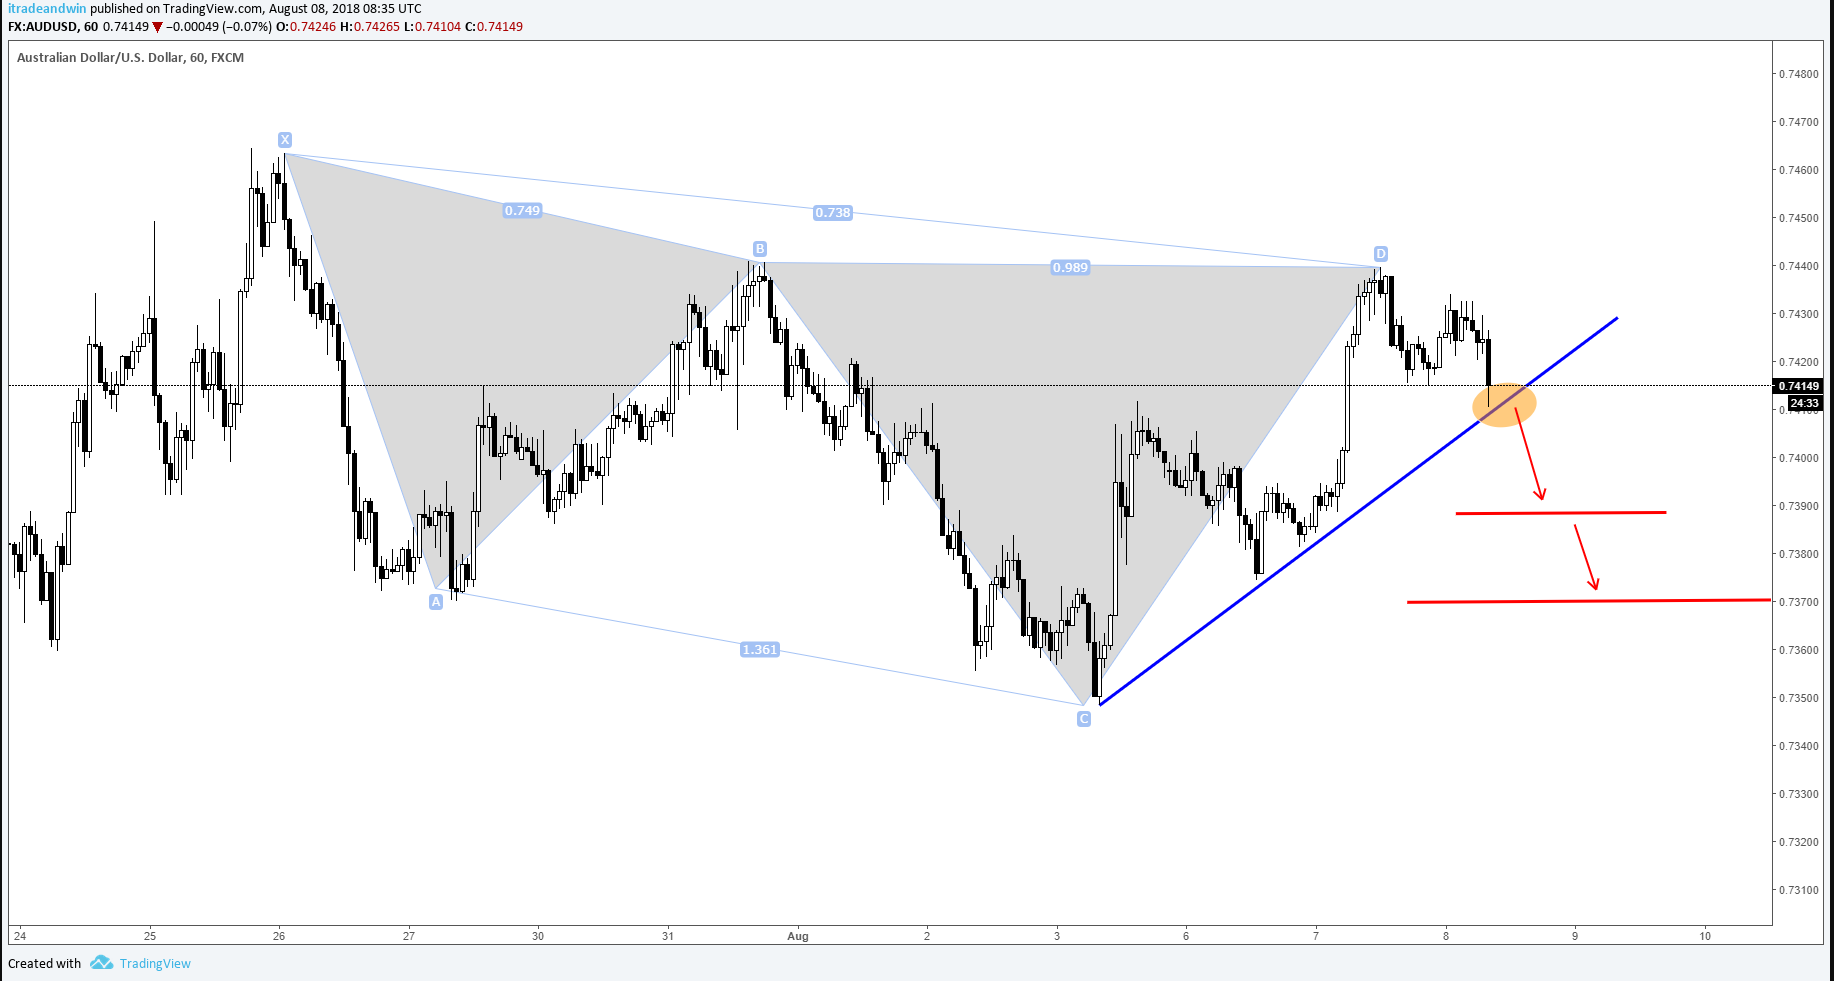 AUDUSD Trendline Breakout and Potential Short Opportunity